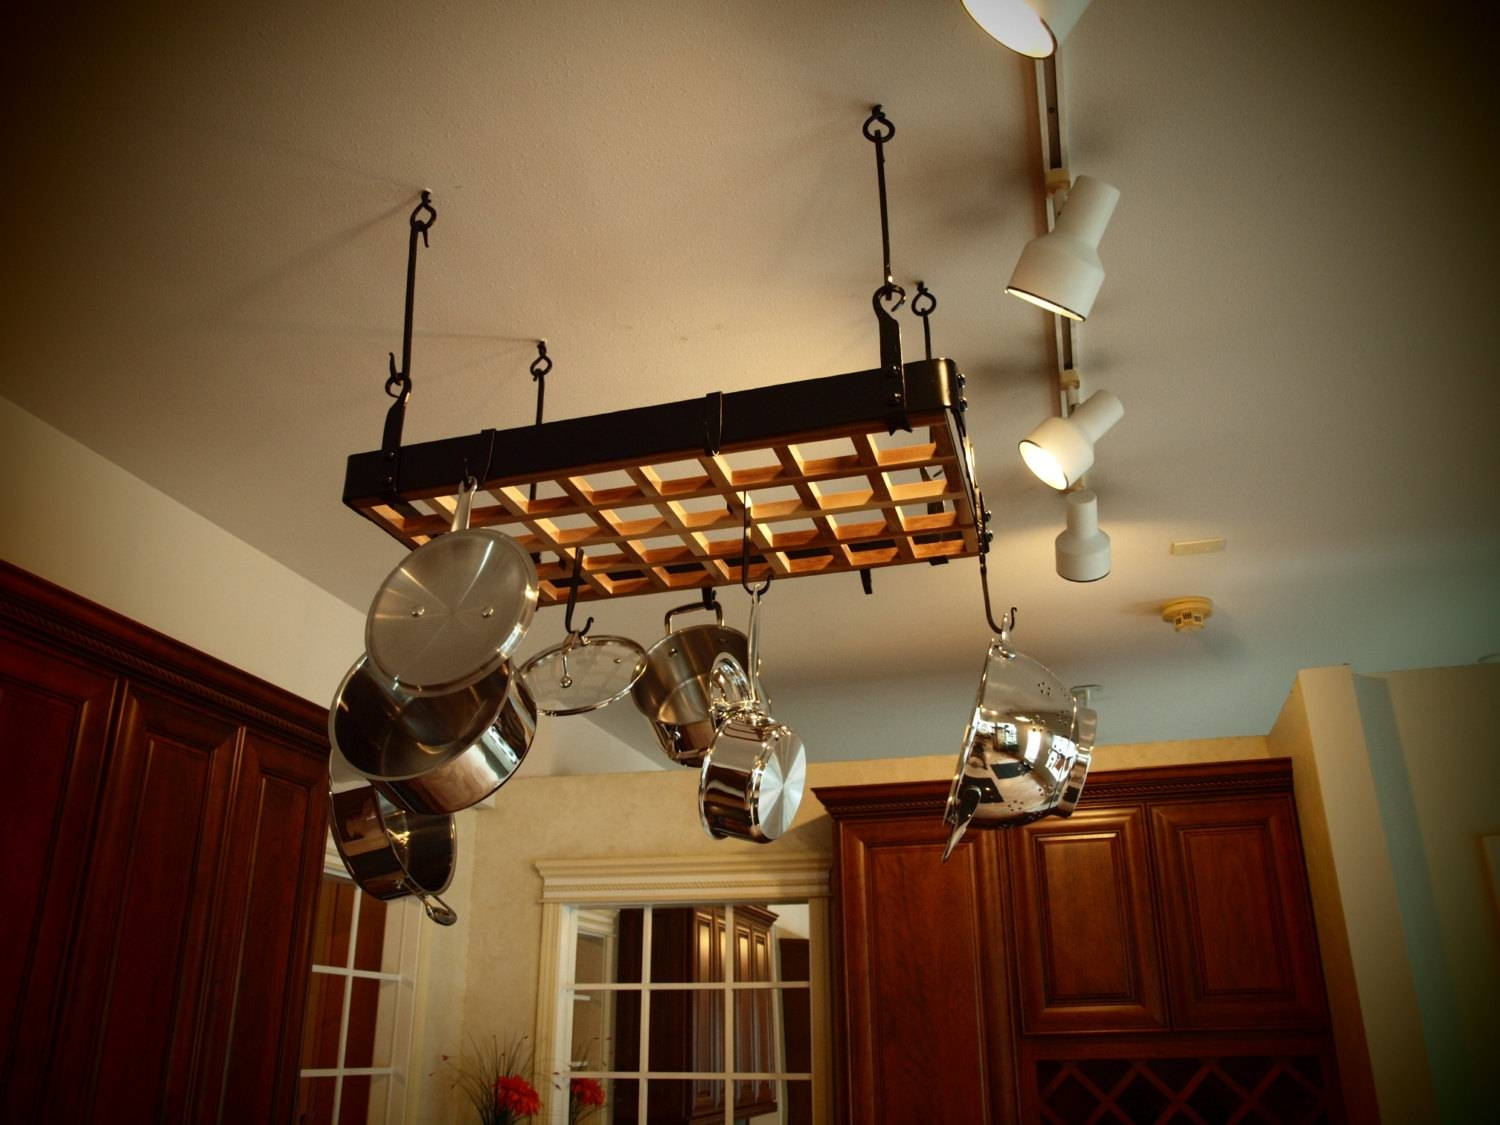 Custom Forged Hanging Pot Rack in Pot Rack With Lights Fixtures (Image 2 of 15)